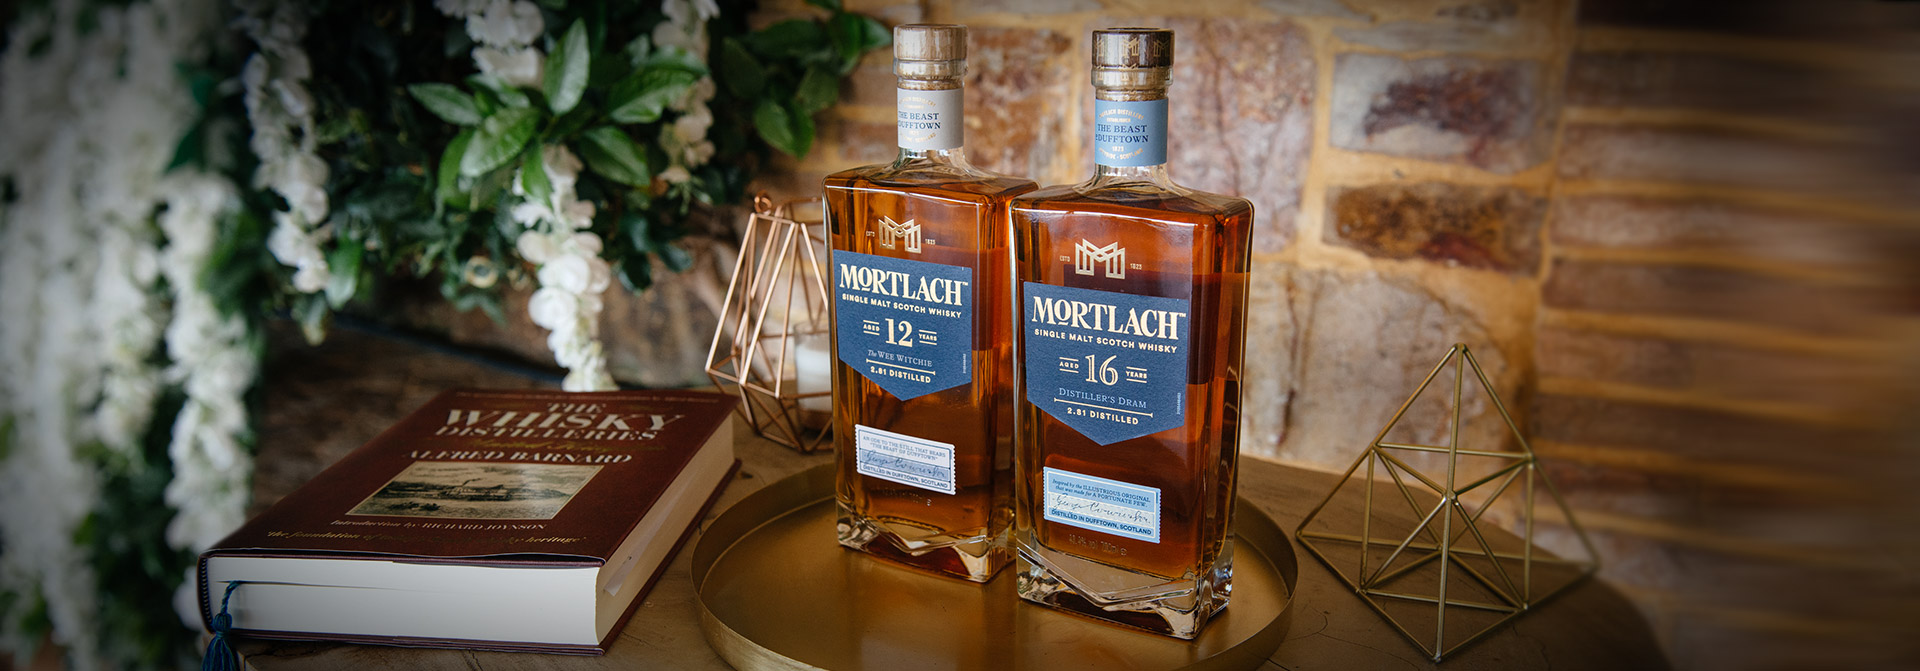 The Tasters Club Mortlach Summer Night whisky